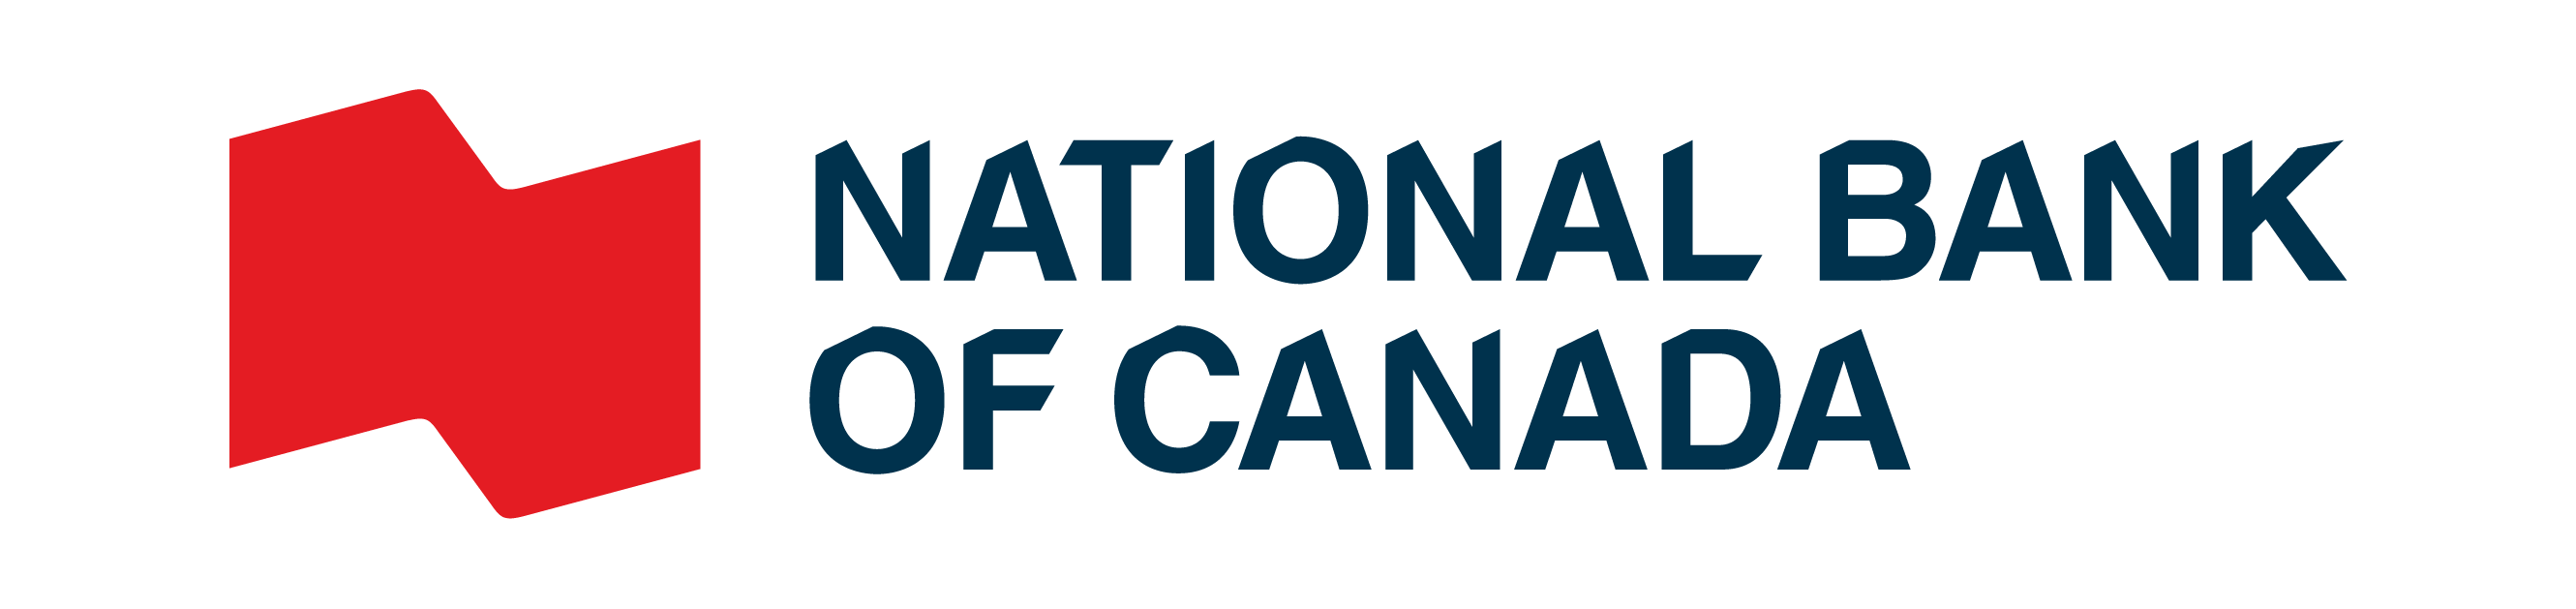 National Bank of Canada 로고